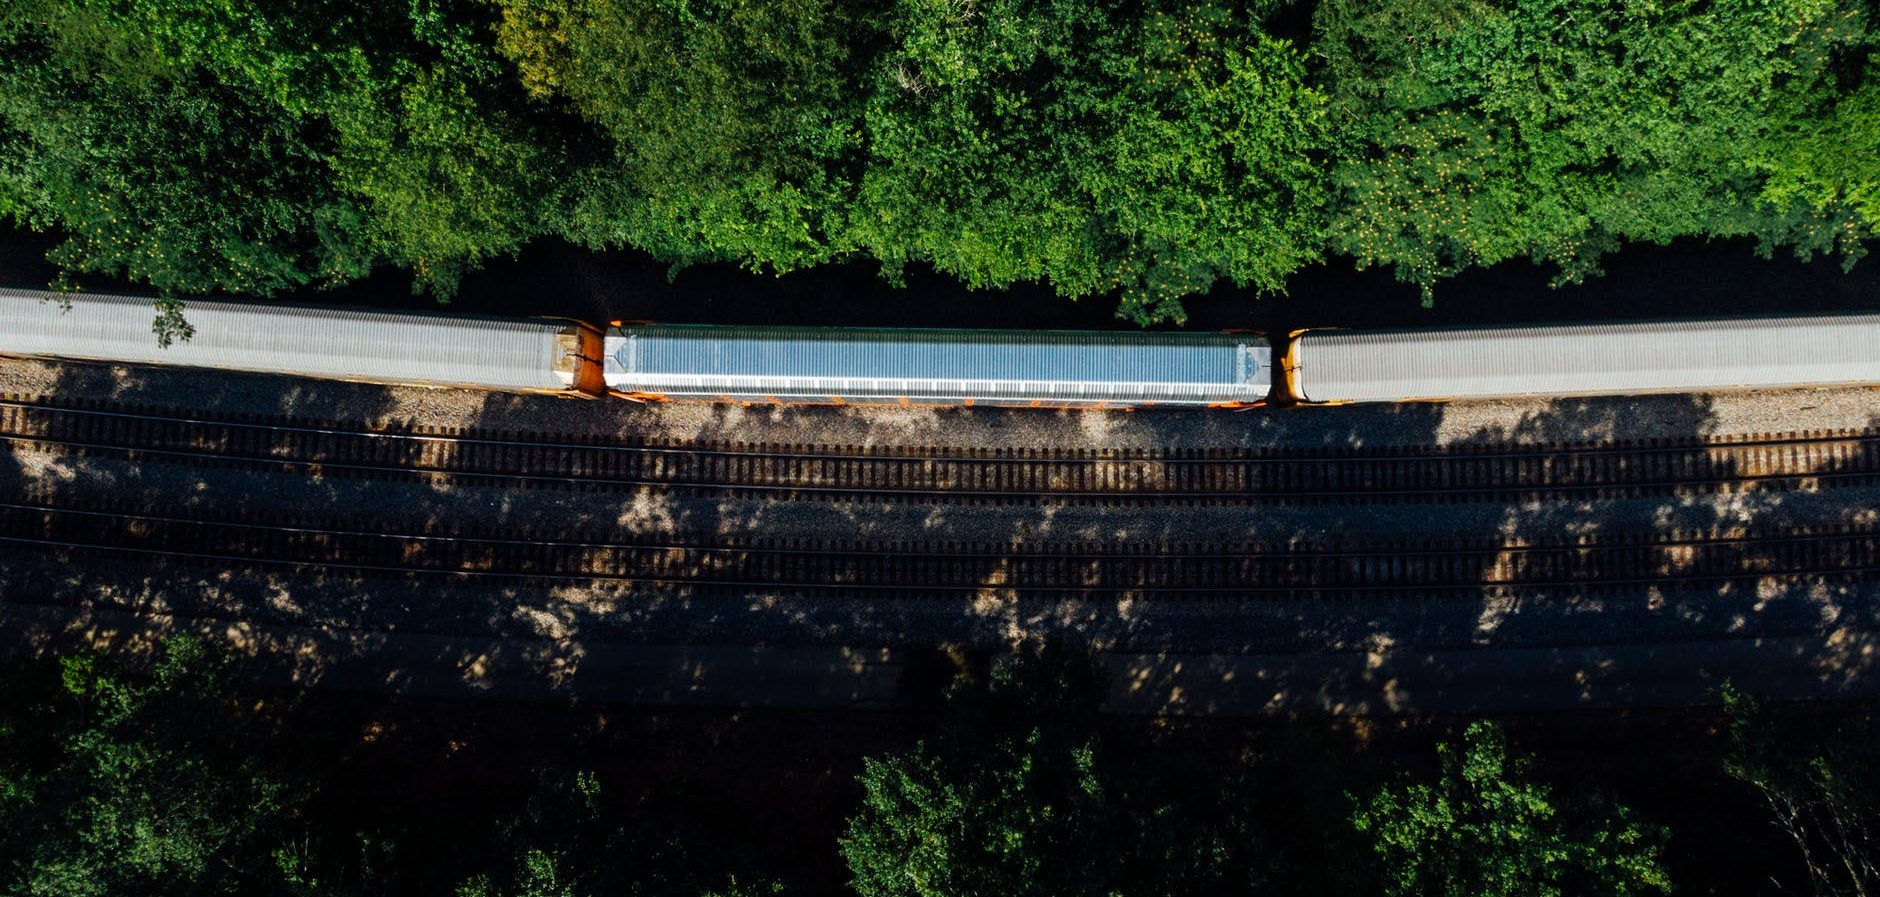 top view photo of train surrounded by trees